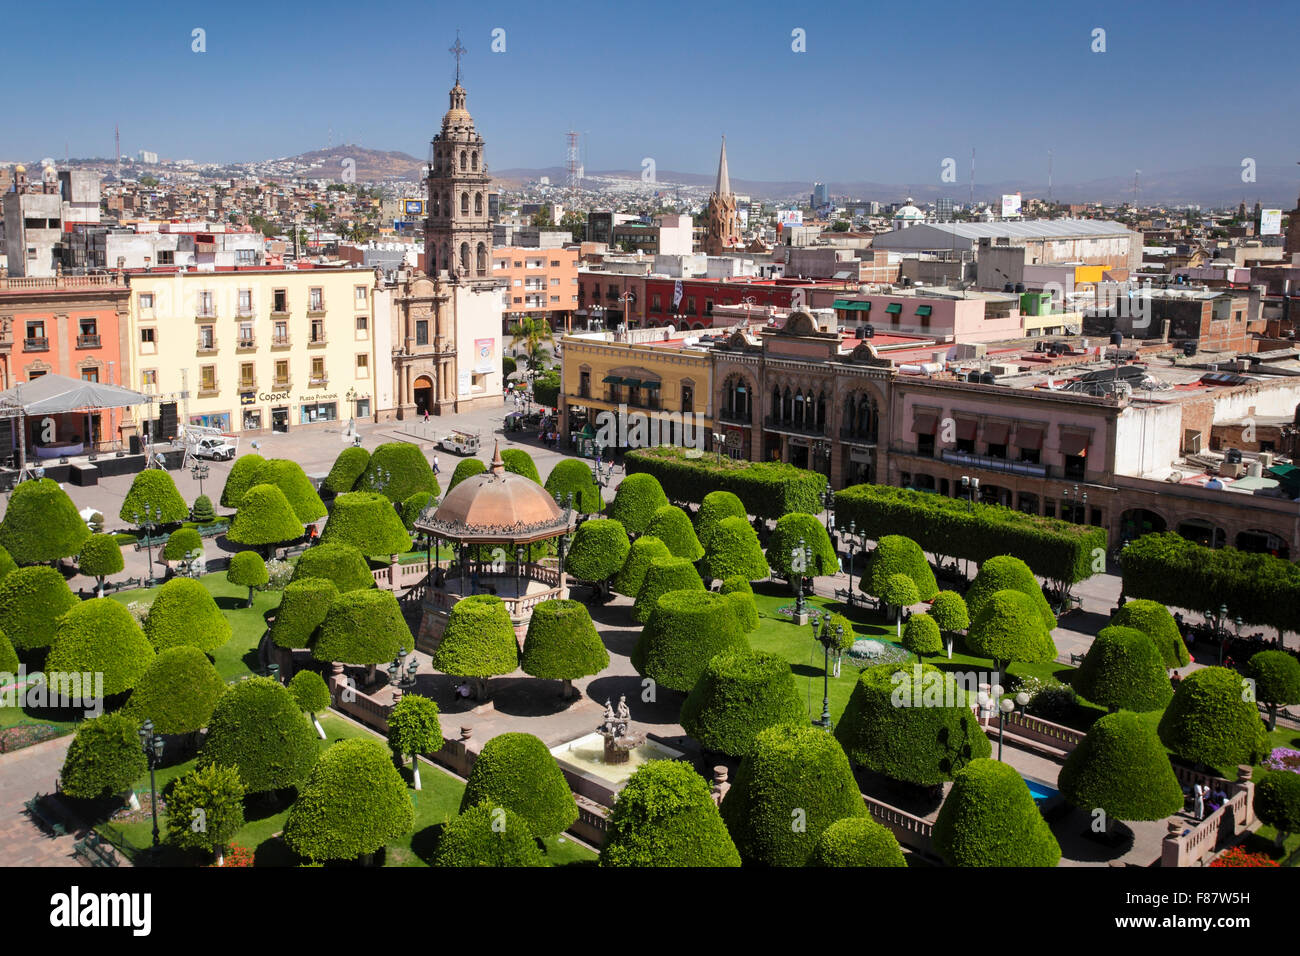 mexico city aerial daytime photos mexico city aerial daytime images alamy. Black Bedroom Furniture Sets. Home Design Ideas